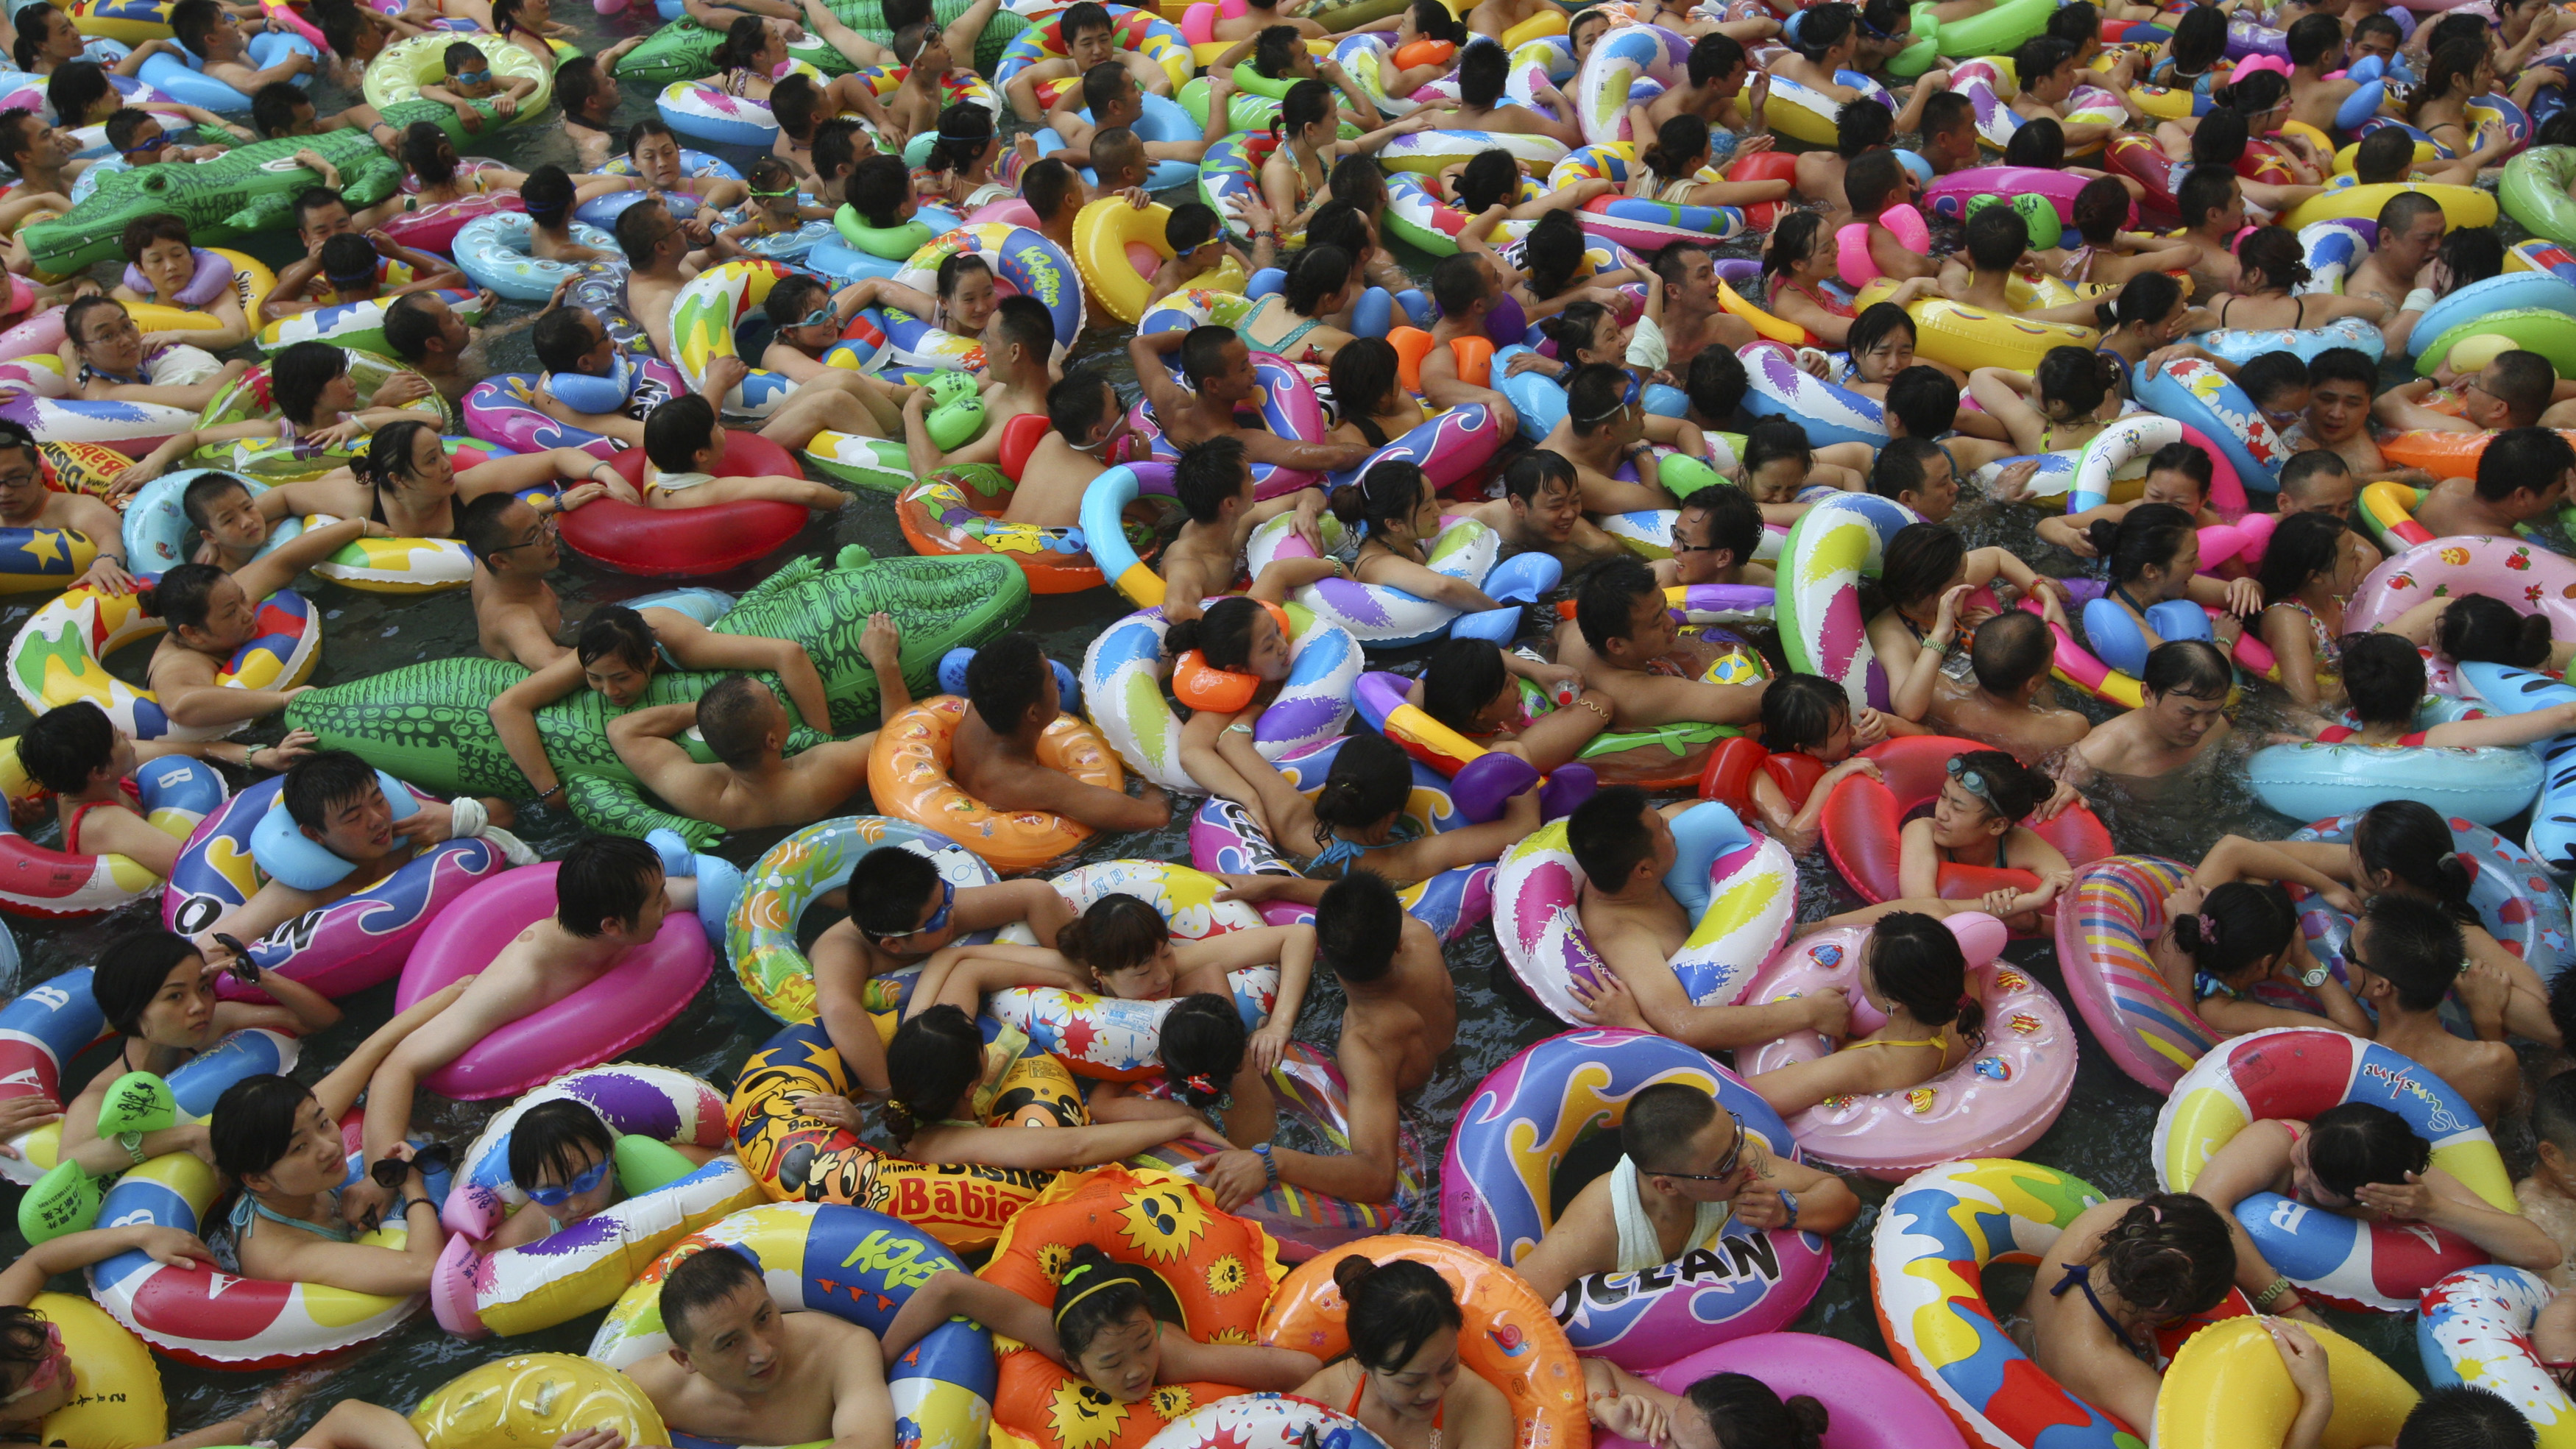 Visitors crowd an artificial wave pool at a tourist resort to escape the summer heat in Daying county of Suining, Sichuan province, July 27, 2013. Picture taken July 27, 2013. REUTERS/China Daily (CHINA - Tags: ENVIRONMENT TRAVEL SOCIETY TPX IMAGES OF THE DAY) CHINA OUT. NO COMMERCIAL OR EDITORIAL SALES IN CHINA - RTX1226J